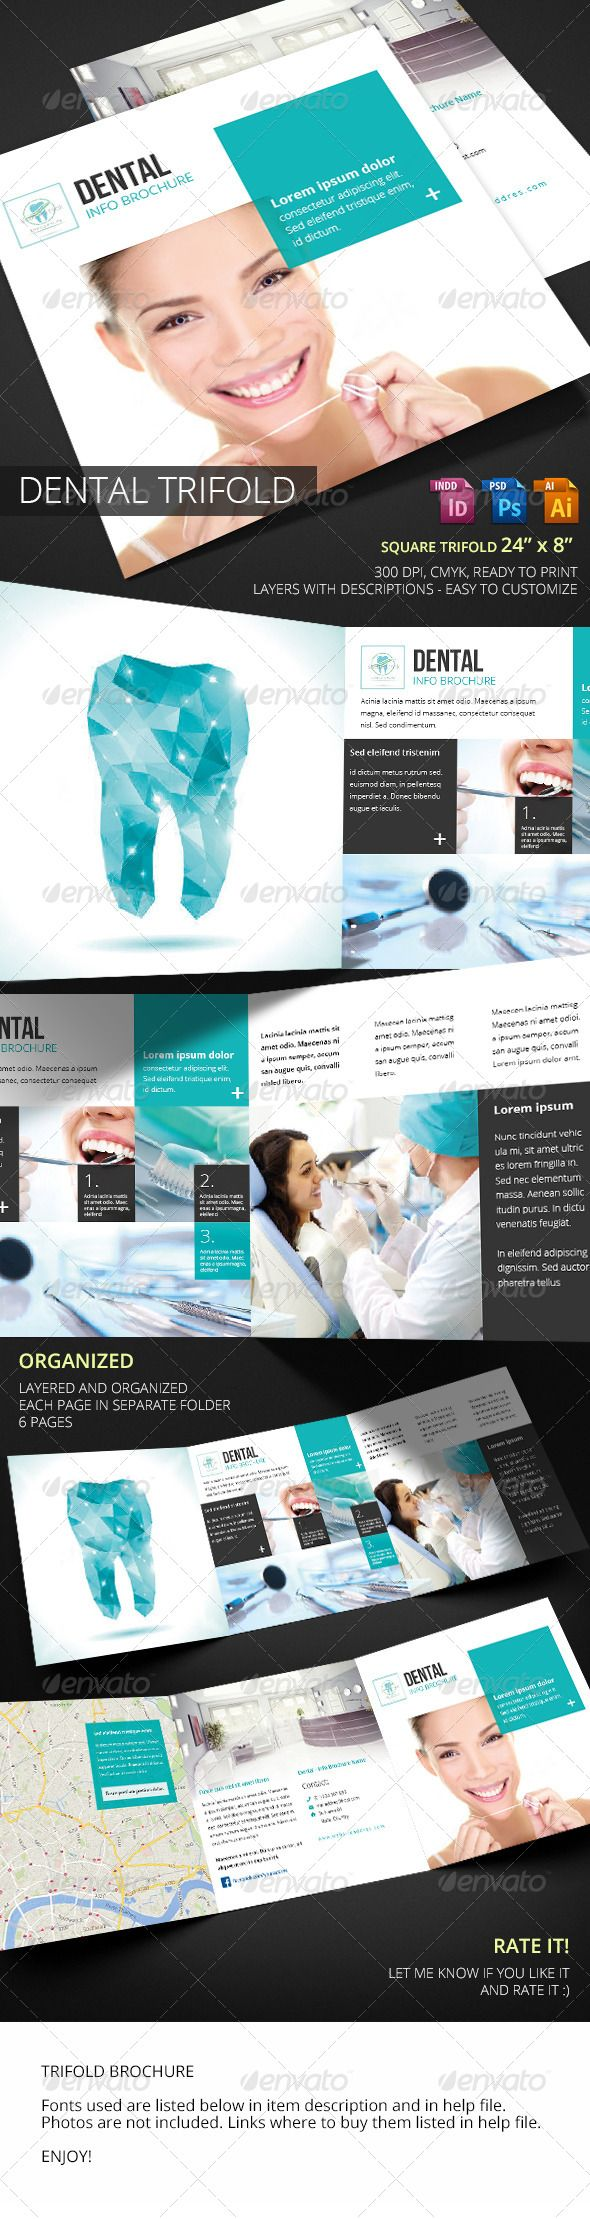 Dental Square Trifold